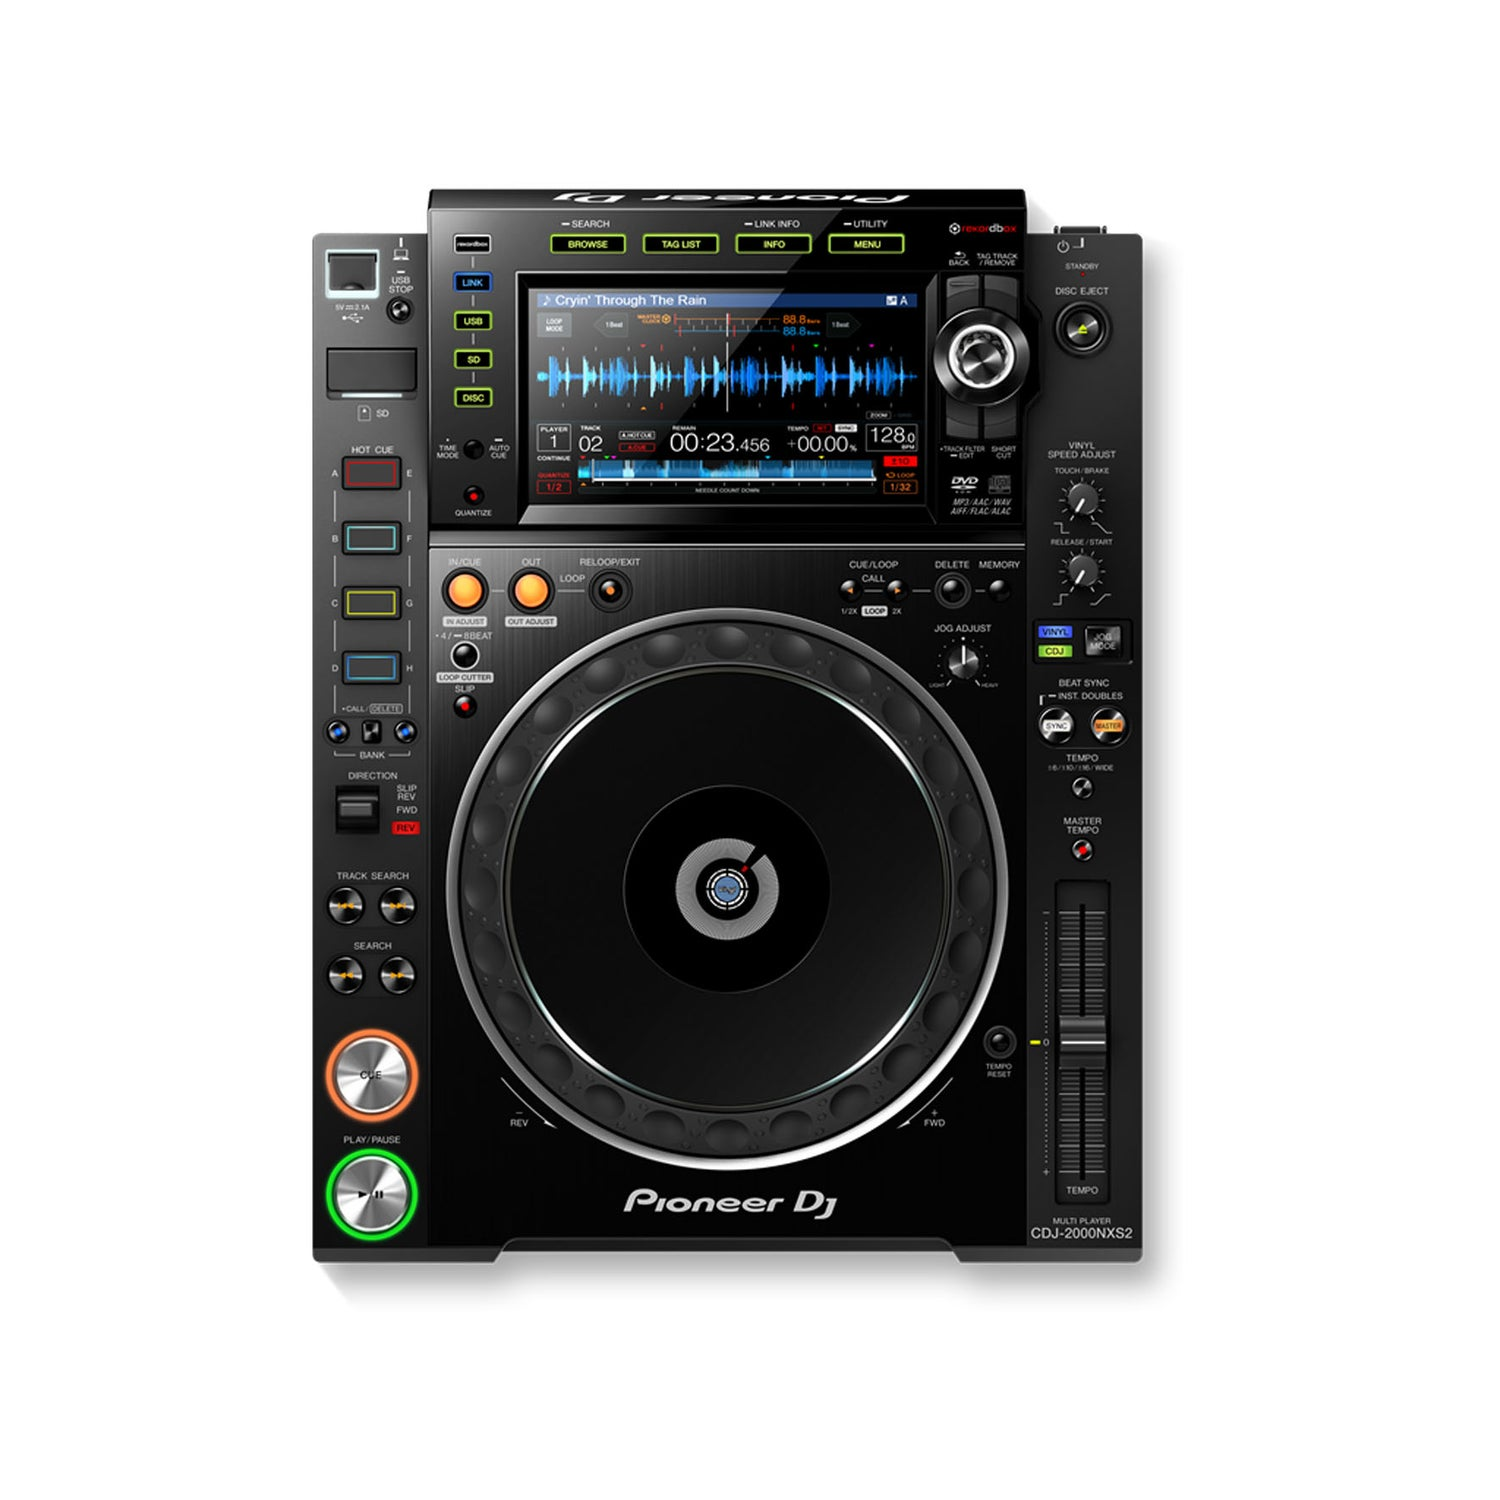 Image of Pioneer CDJ 2000 nexus 2